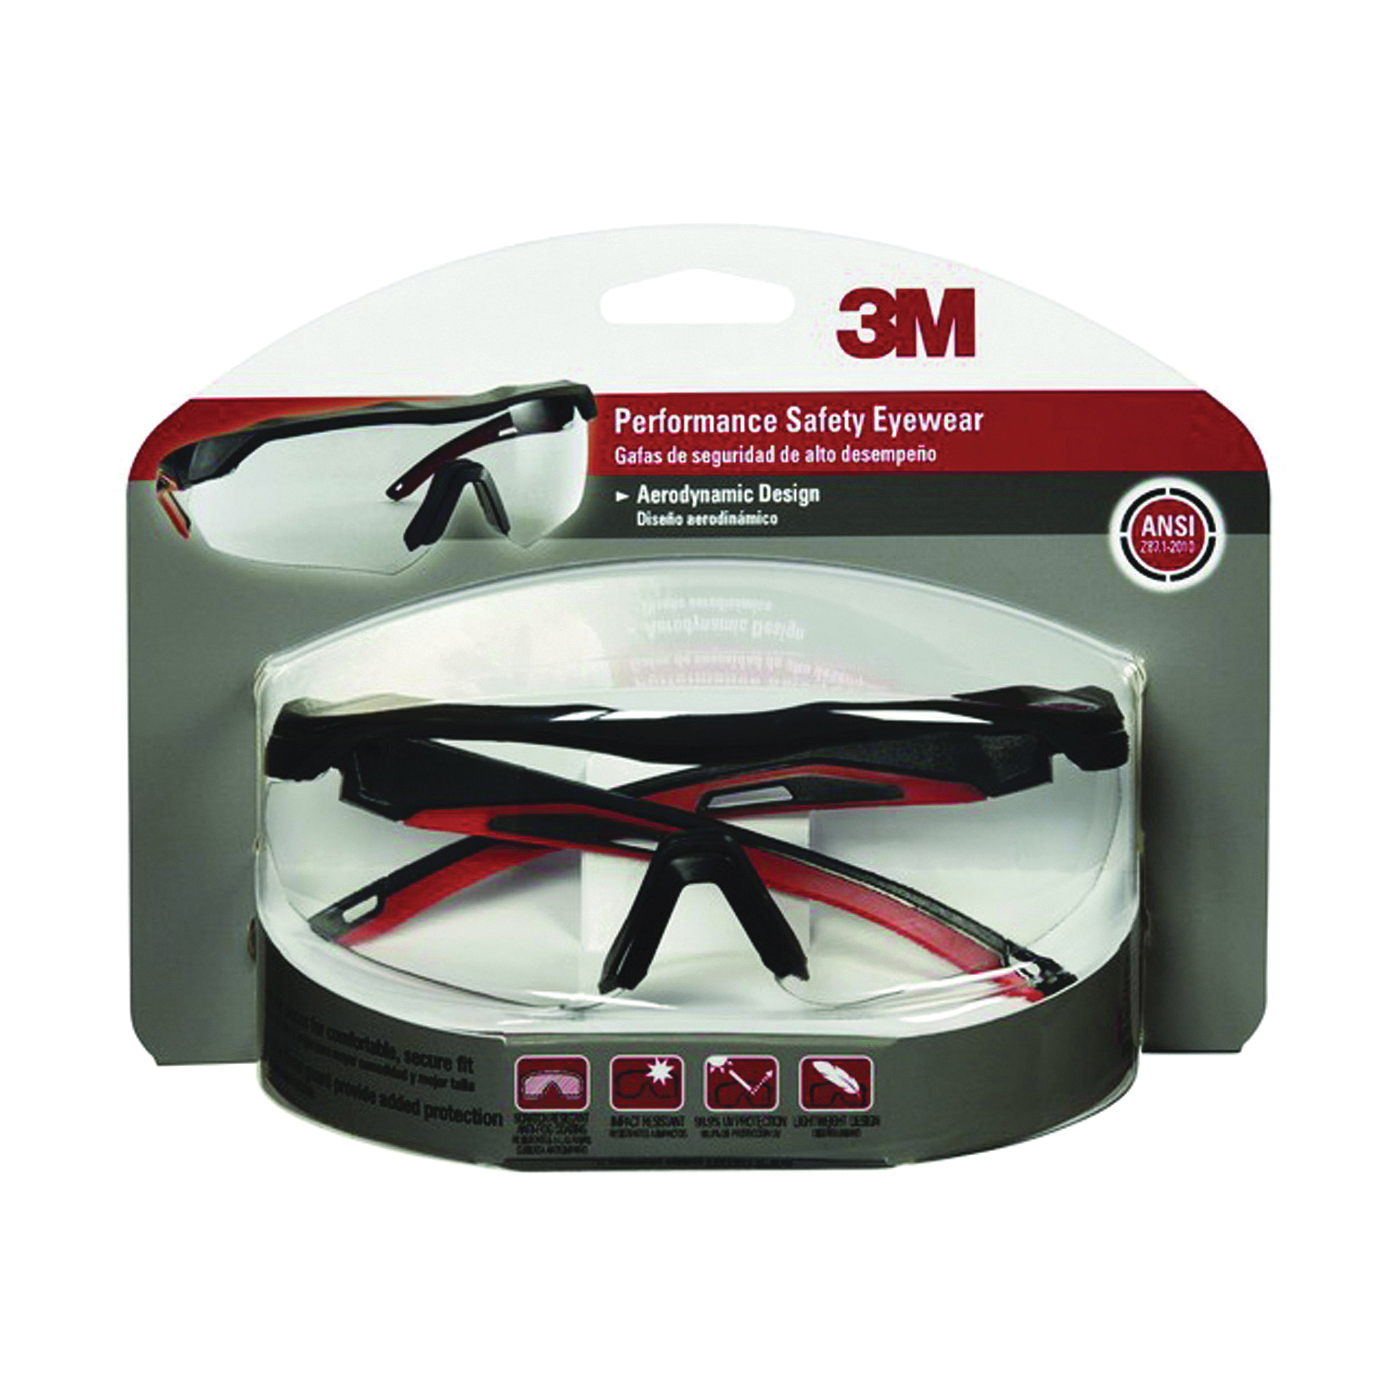 Picture of 3M 47090-WZ4 Safety Glasses, Anti-Fog, Anti-Scratch Lens, Wraparound Frame, Black/Red Frame